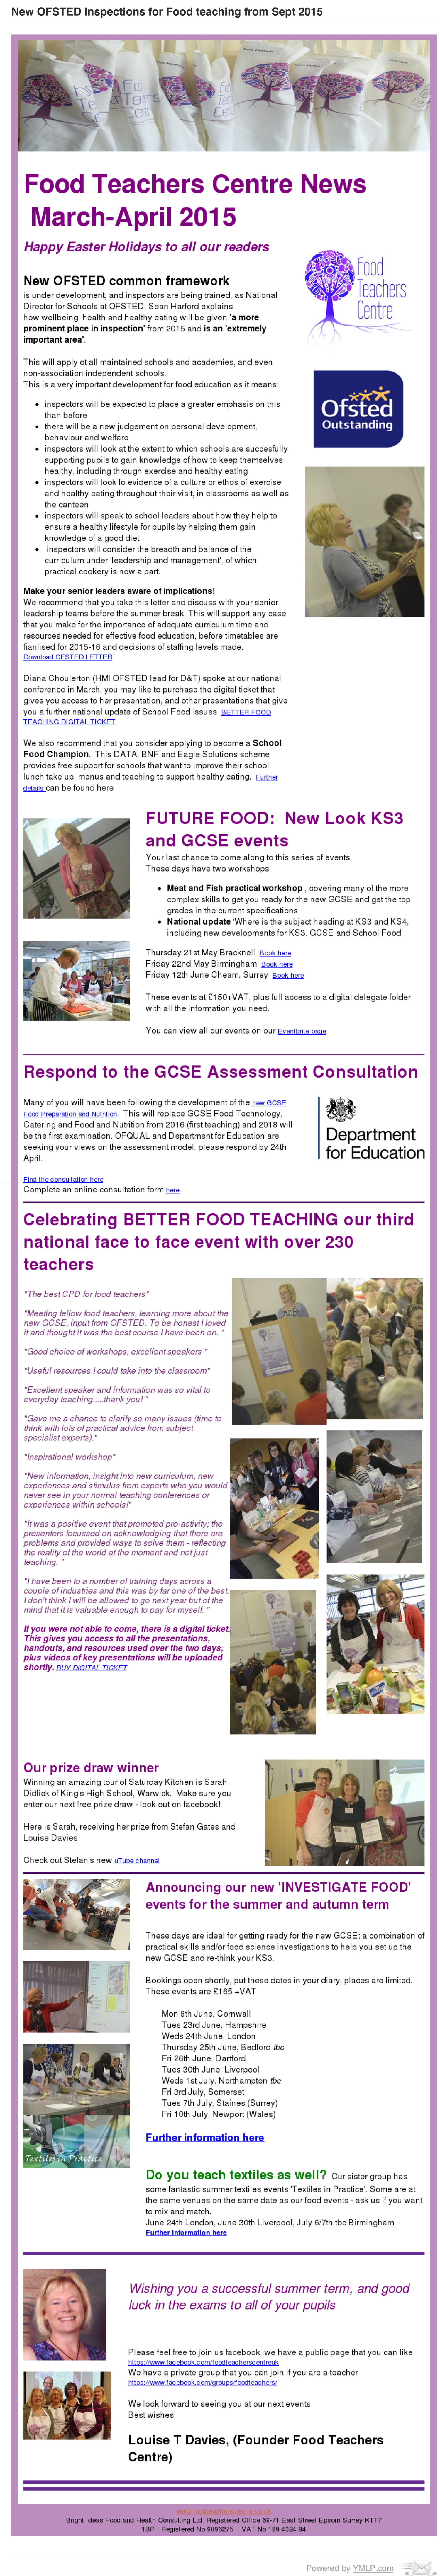 New OFSTED Inspections for Food teaching from Sept 2015